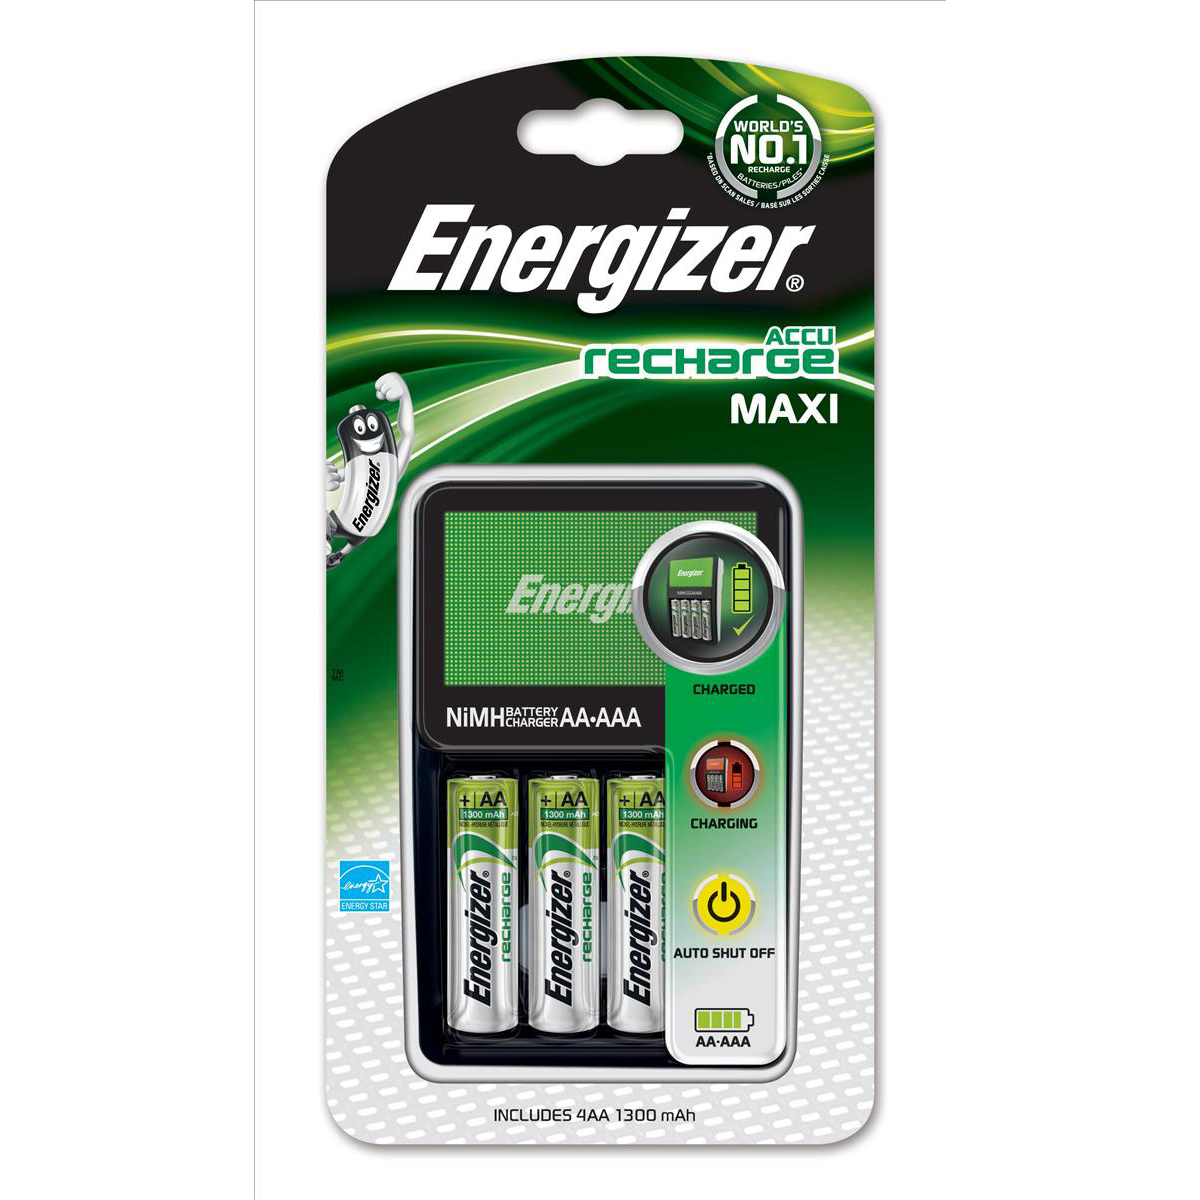 Energizer 1300 Maxi Battery Charger CHVCM4 for AA AAA with 4x AA 2000mAh Batteries Ref 632325